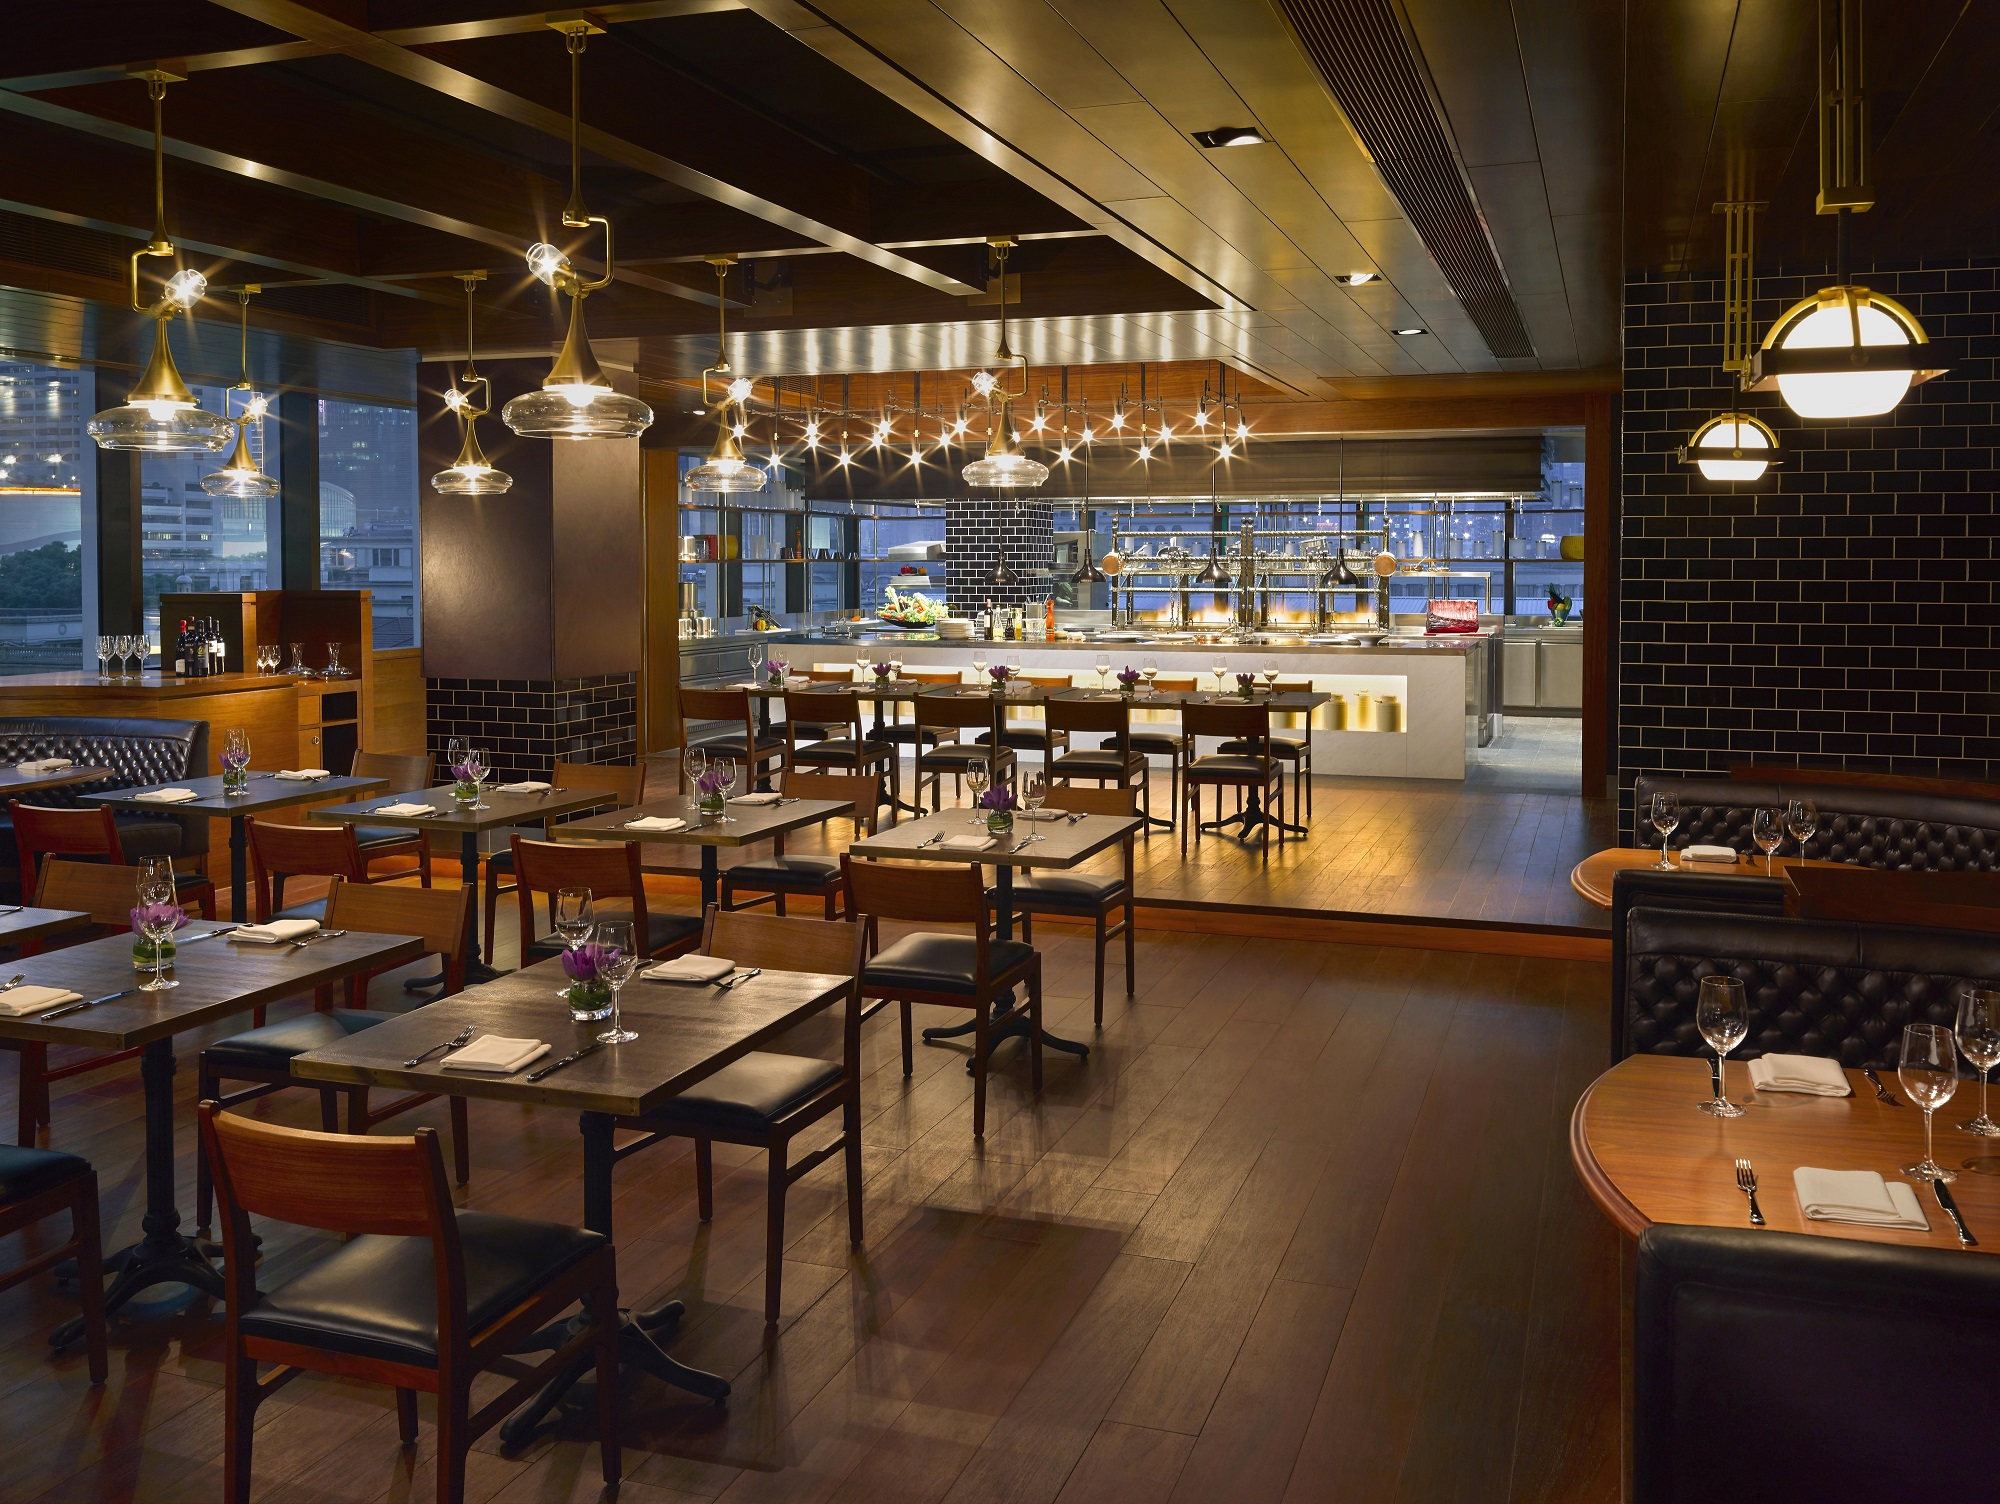 The 1515 West Chophouse & Bar Shanghai